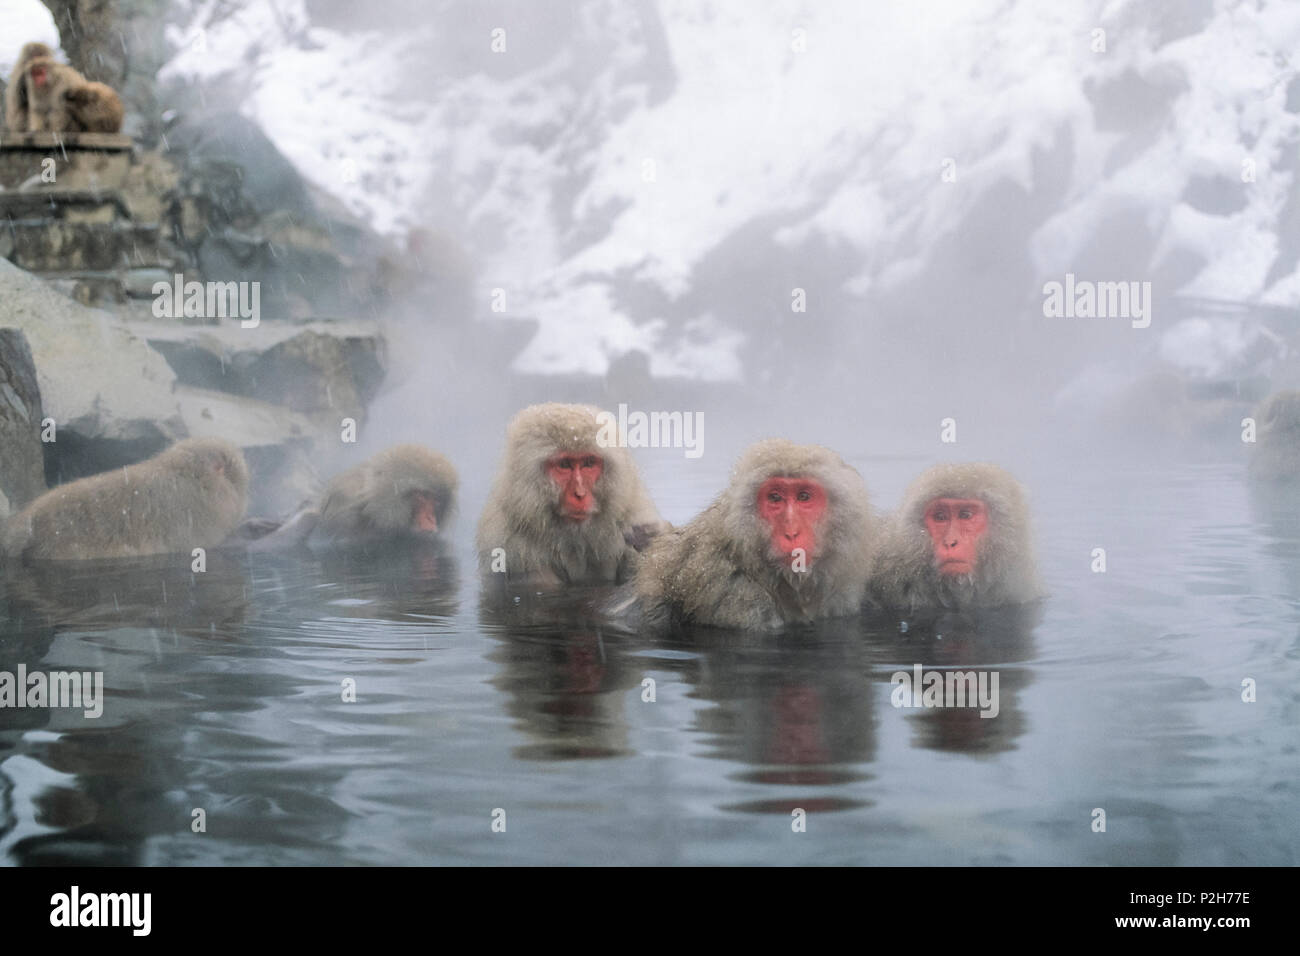 Snowmonkeys, macaques japonais Hot spring, Macaca fuscata, Alpes japonaises, le Japon Photo Stock